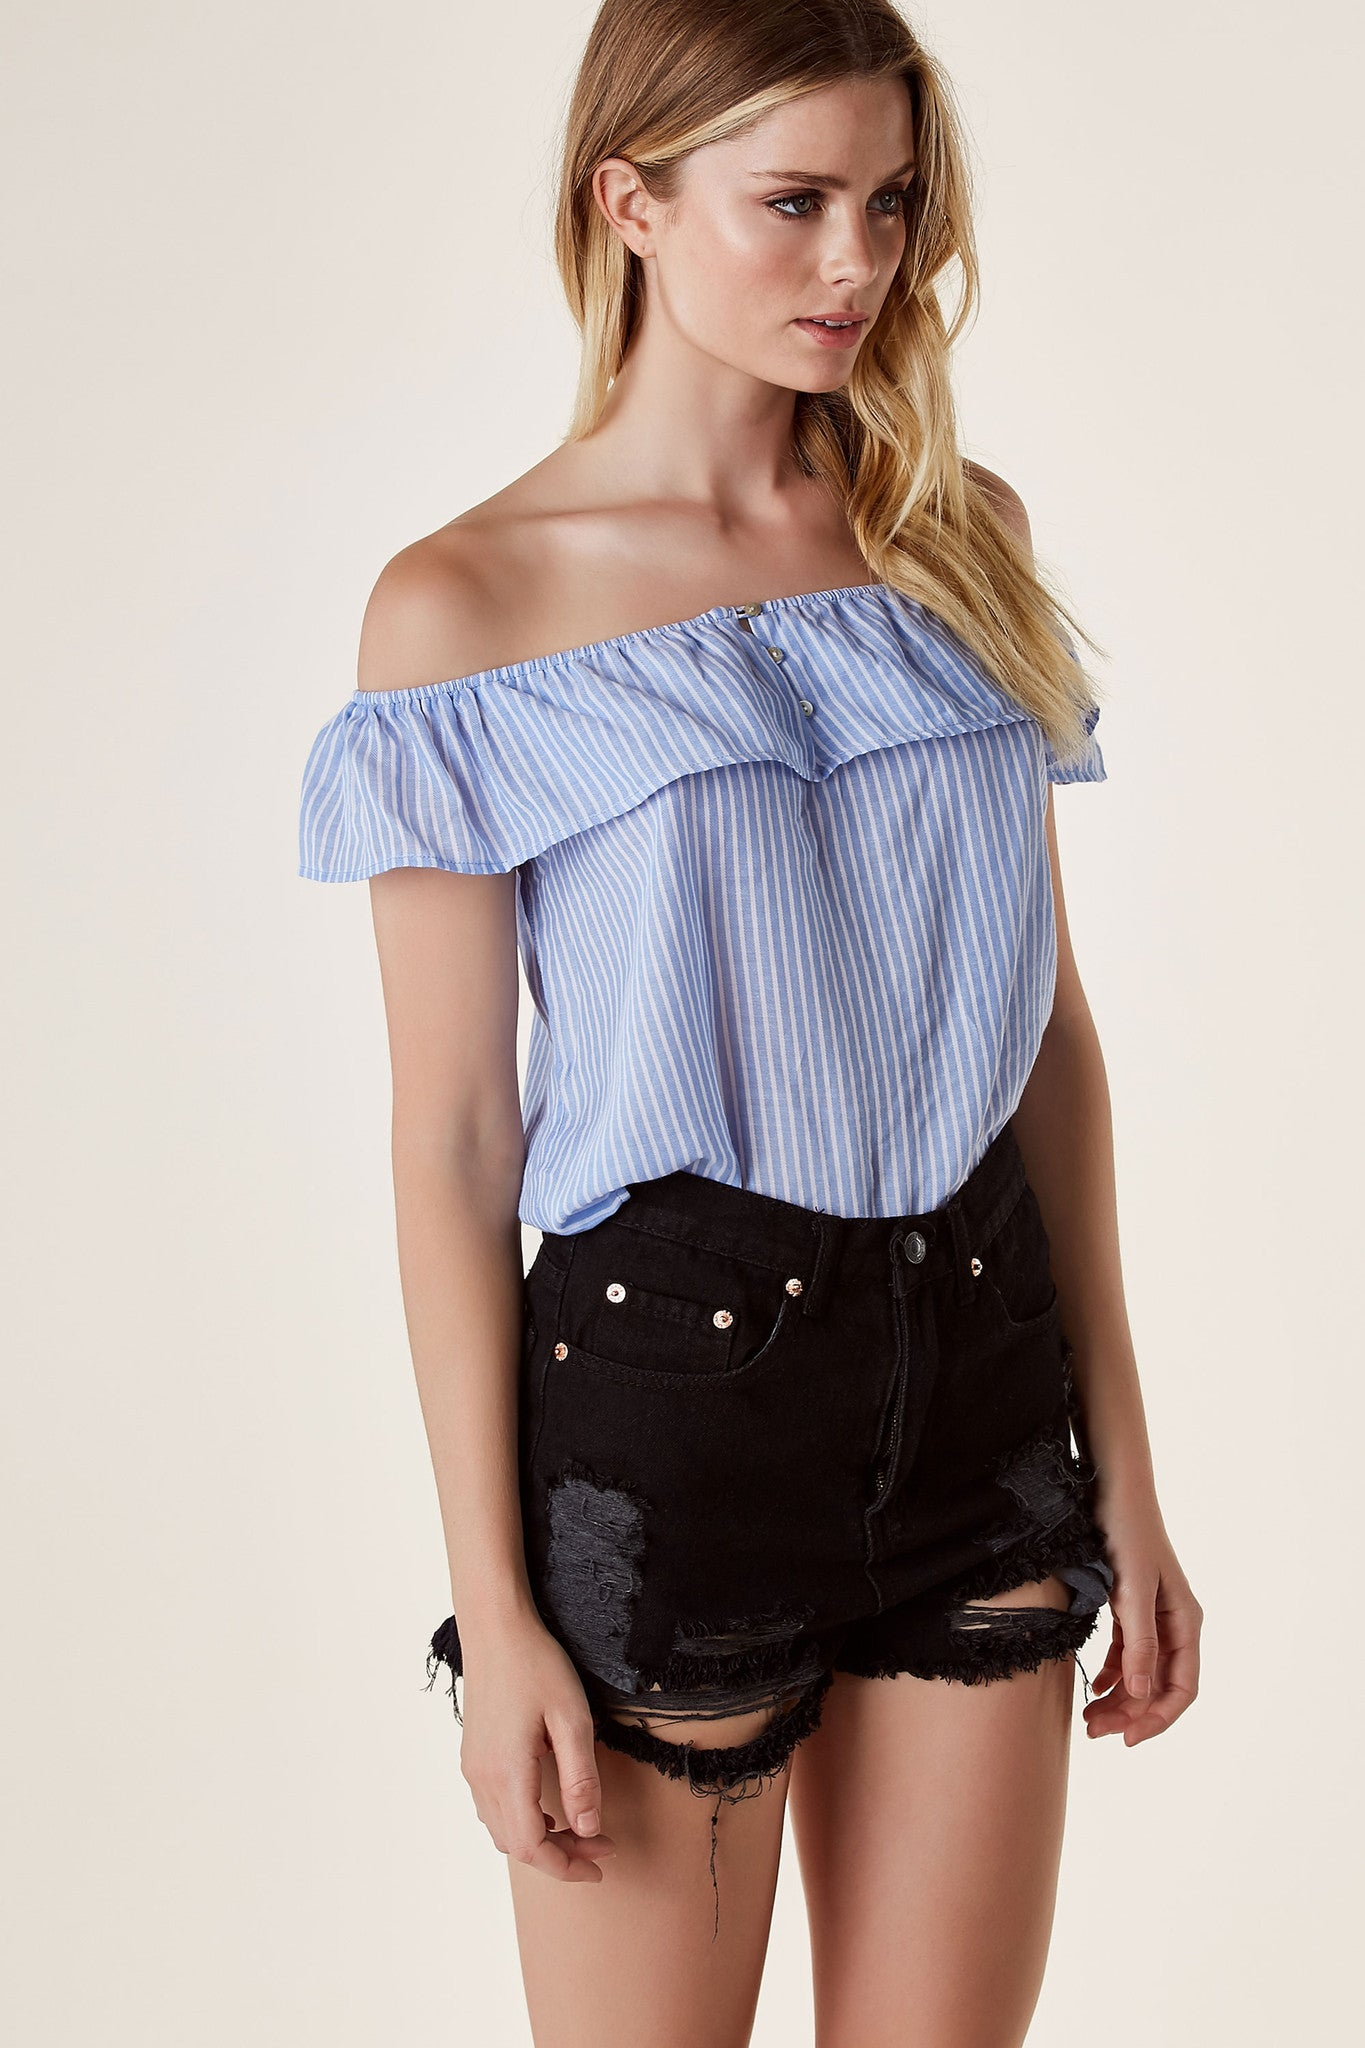 Basic off shoulder blouse with stripe patterns the button detailing in front. Relaxed fit with straight hem finish.